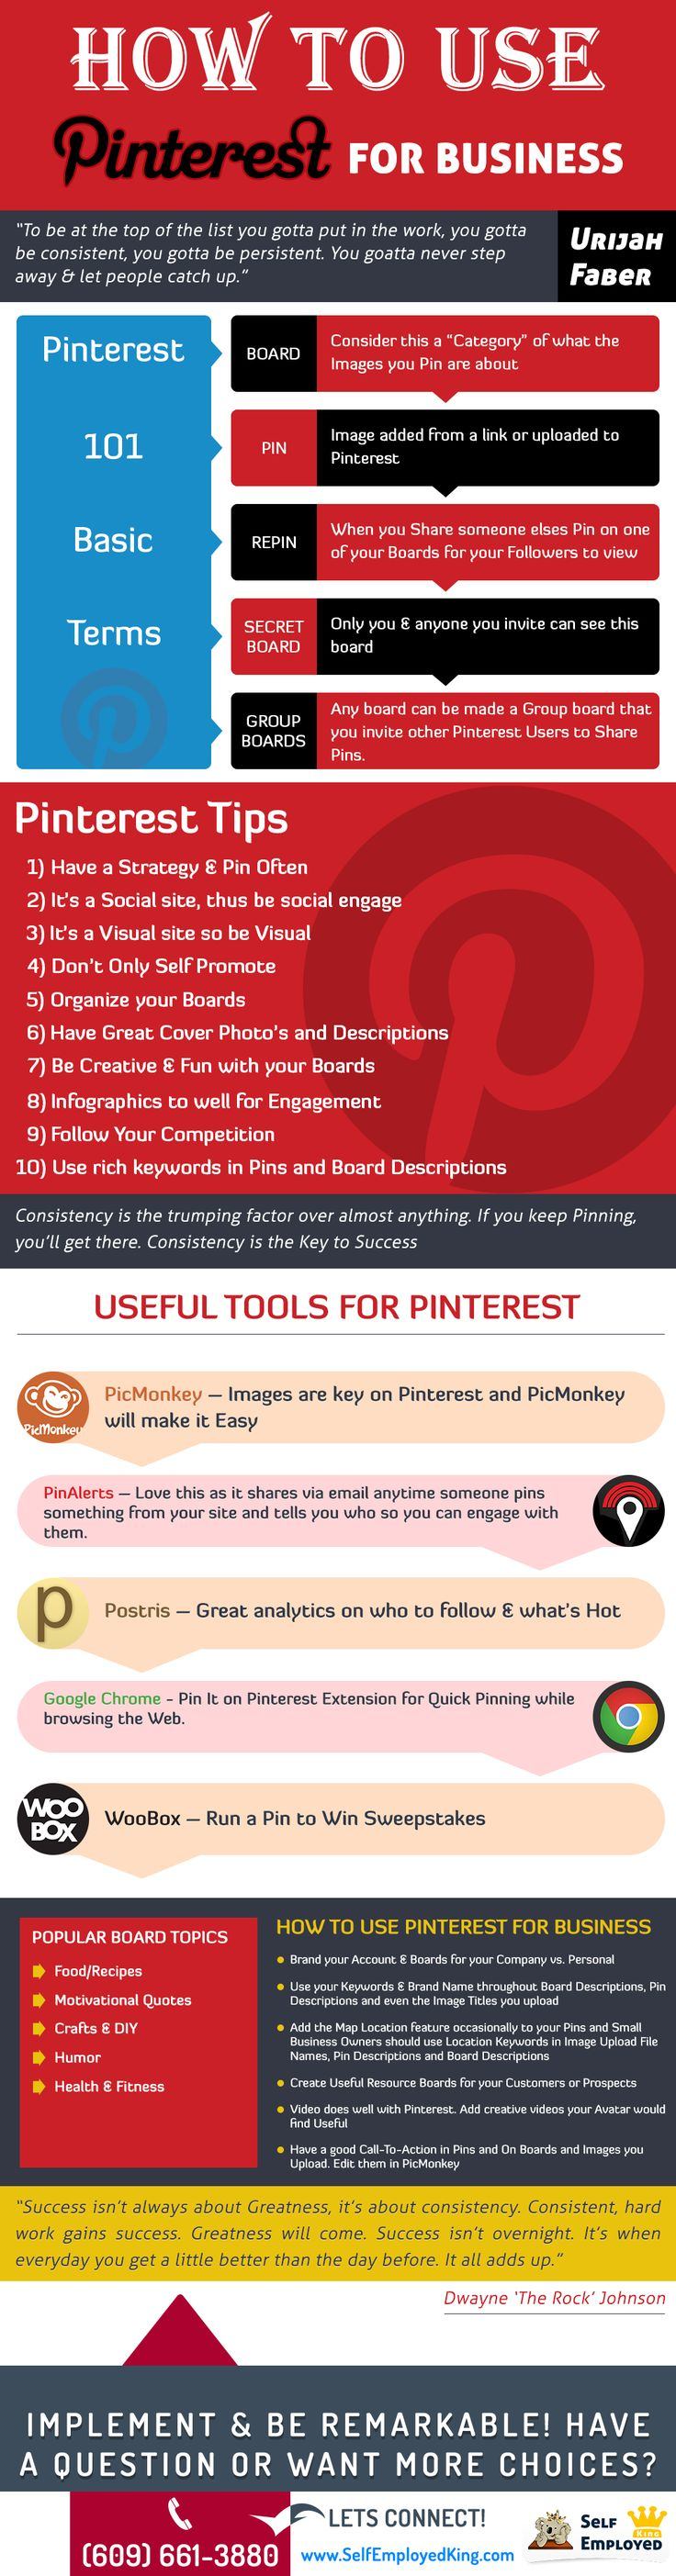 How to Use Pinterest For Business #infographic